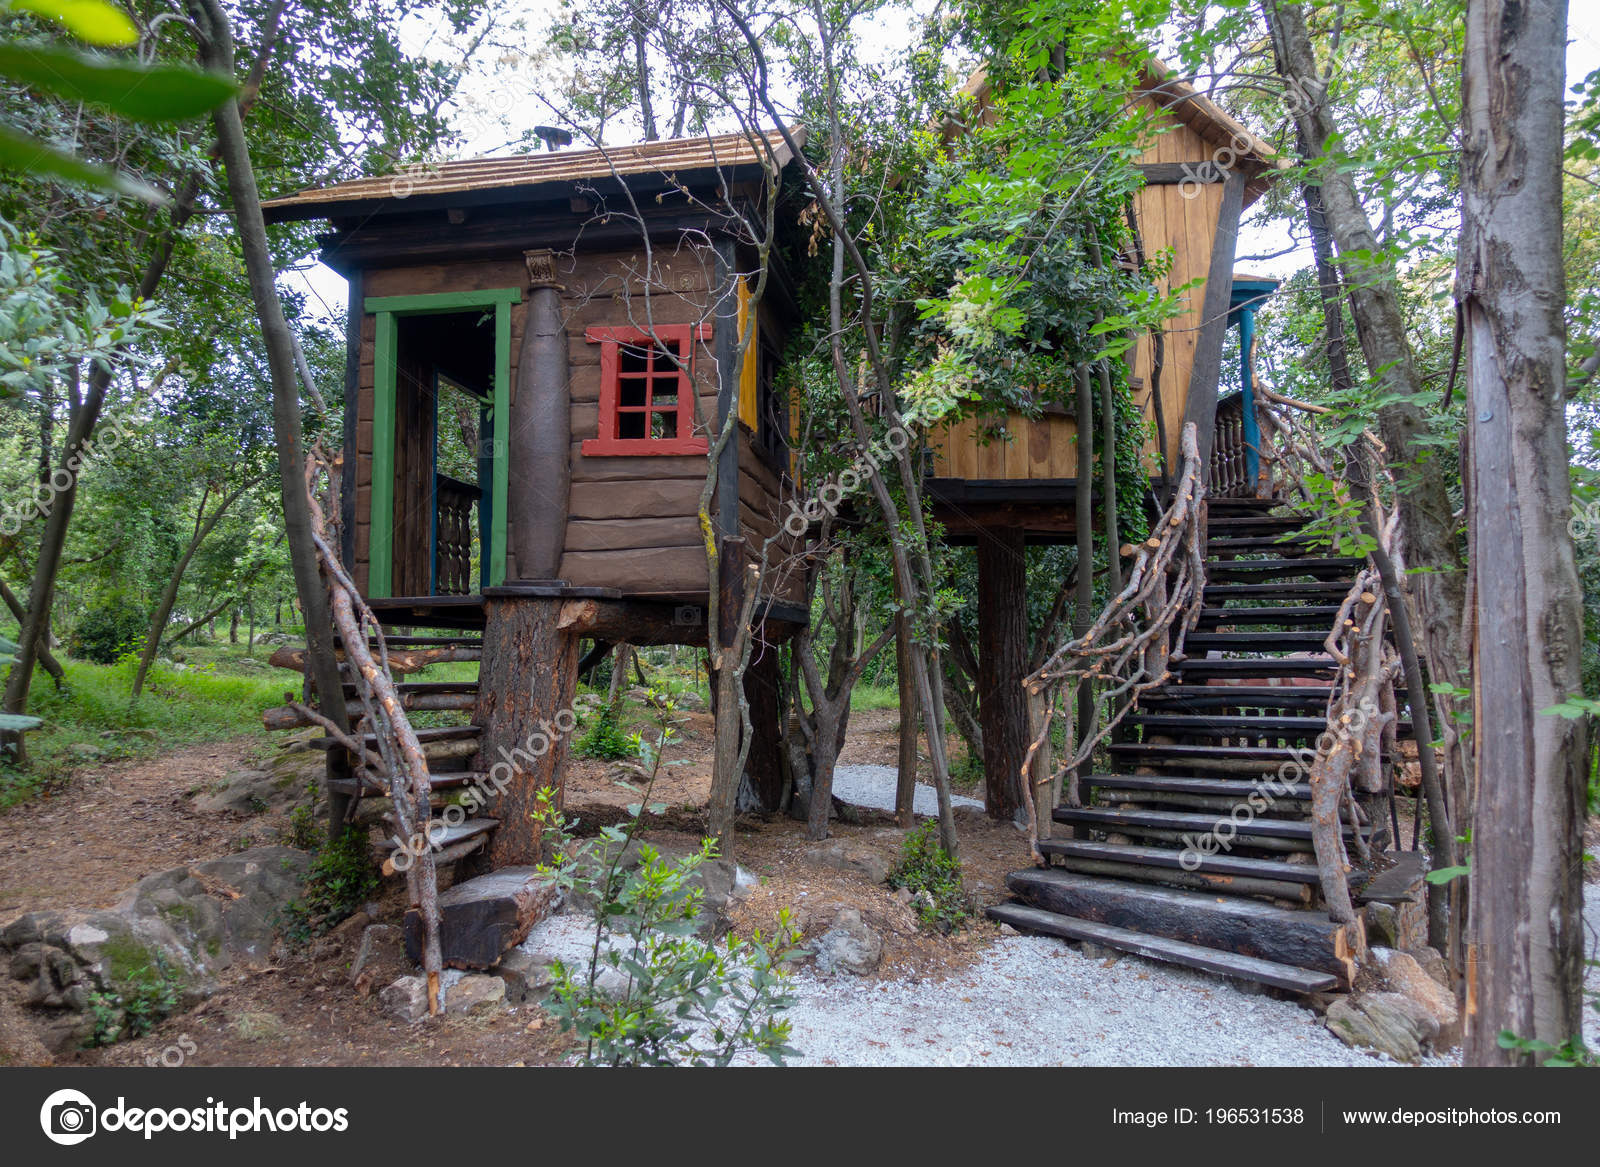 Fantasy Tree House For Children Playing Stock Photo C Asafaric 196531538